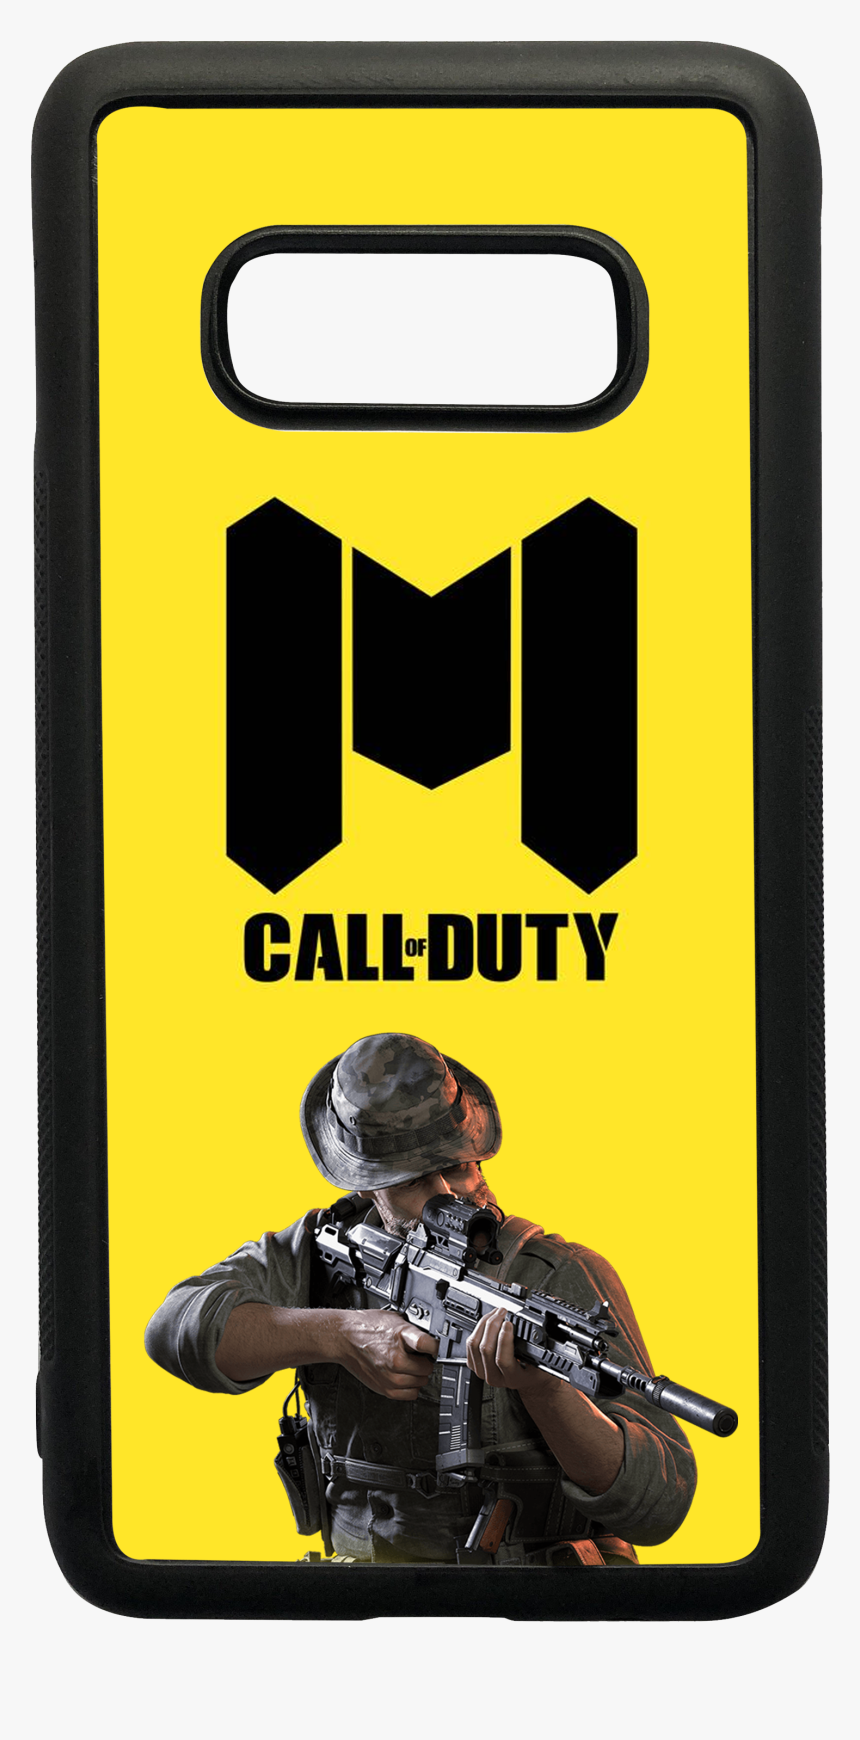 Cod Price Design Case Call Of Duty Mobile Wallpaper Logo Hd Png